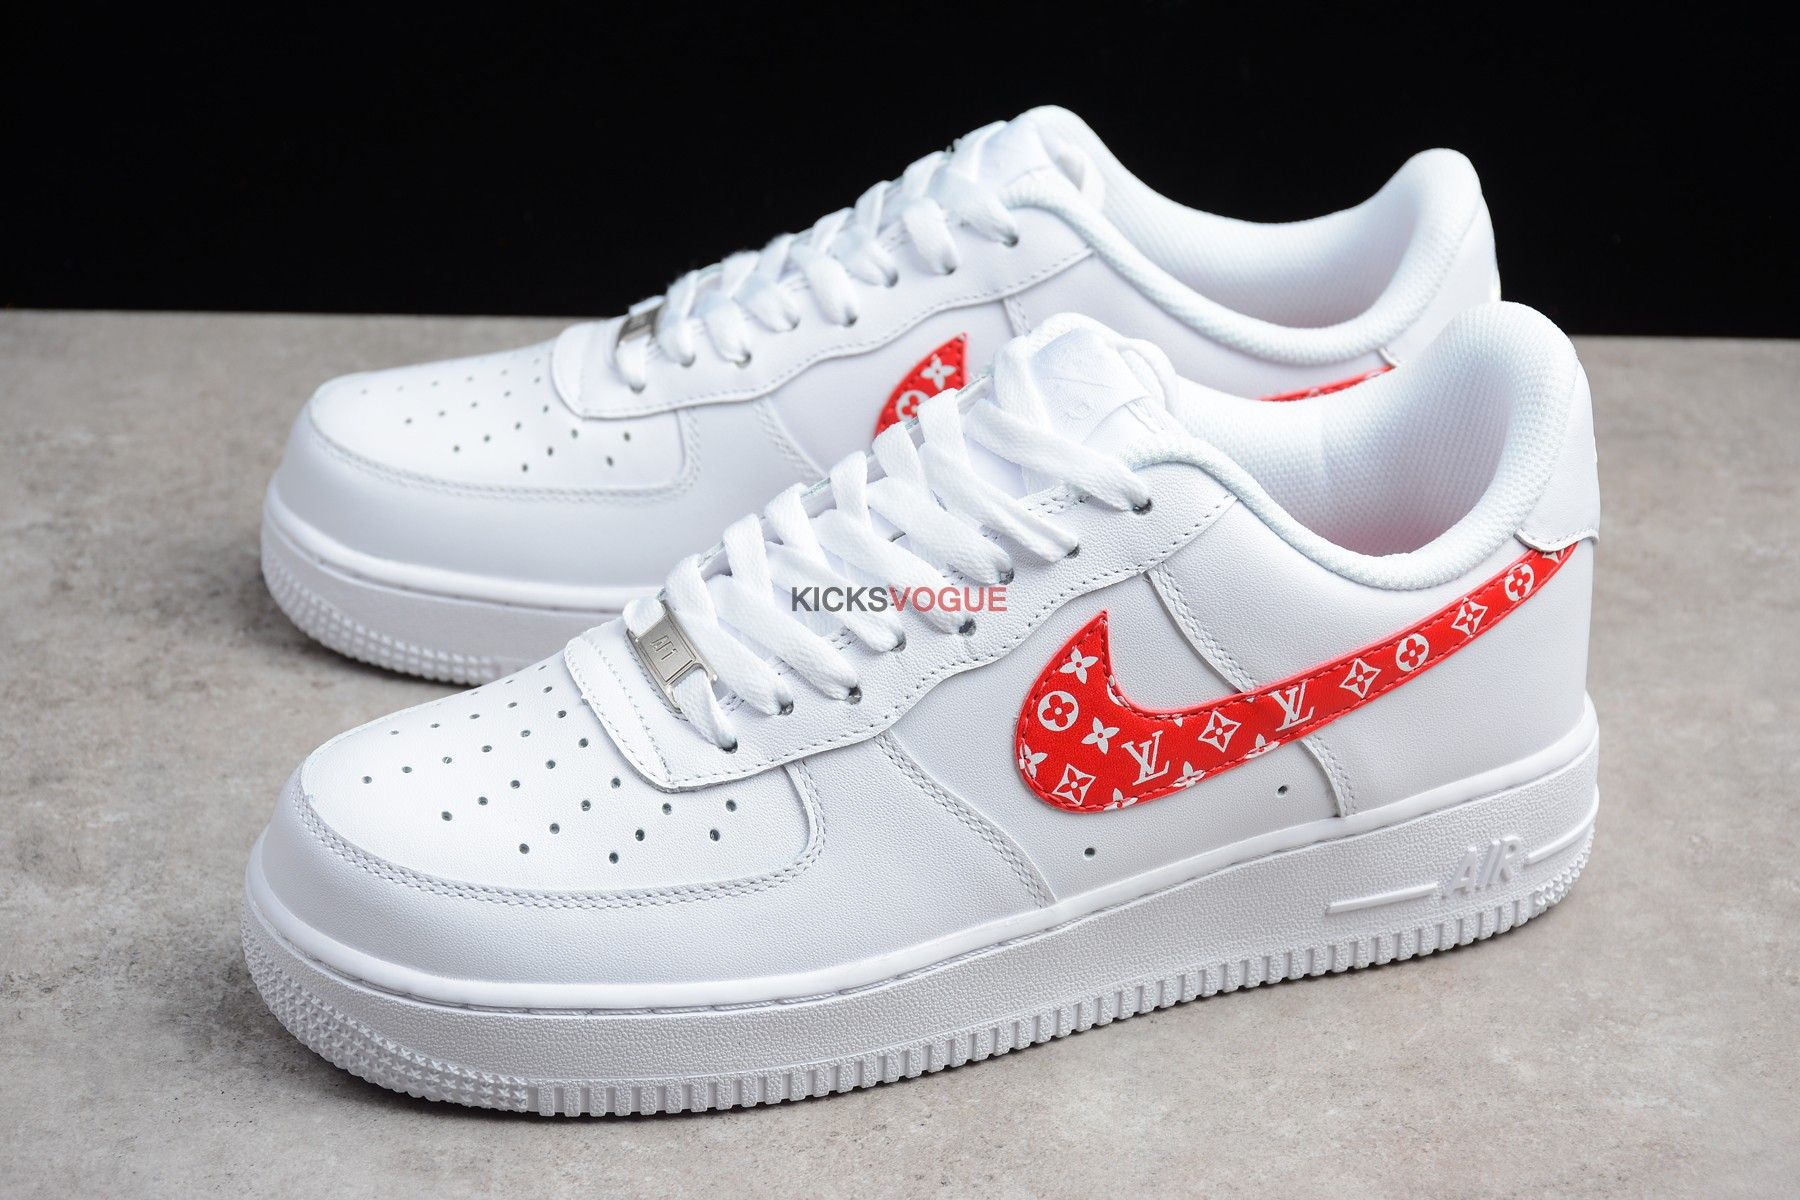 Nike Air Force 1 x Supreme x LV Louis Vuitton Custom | Louis ...